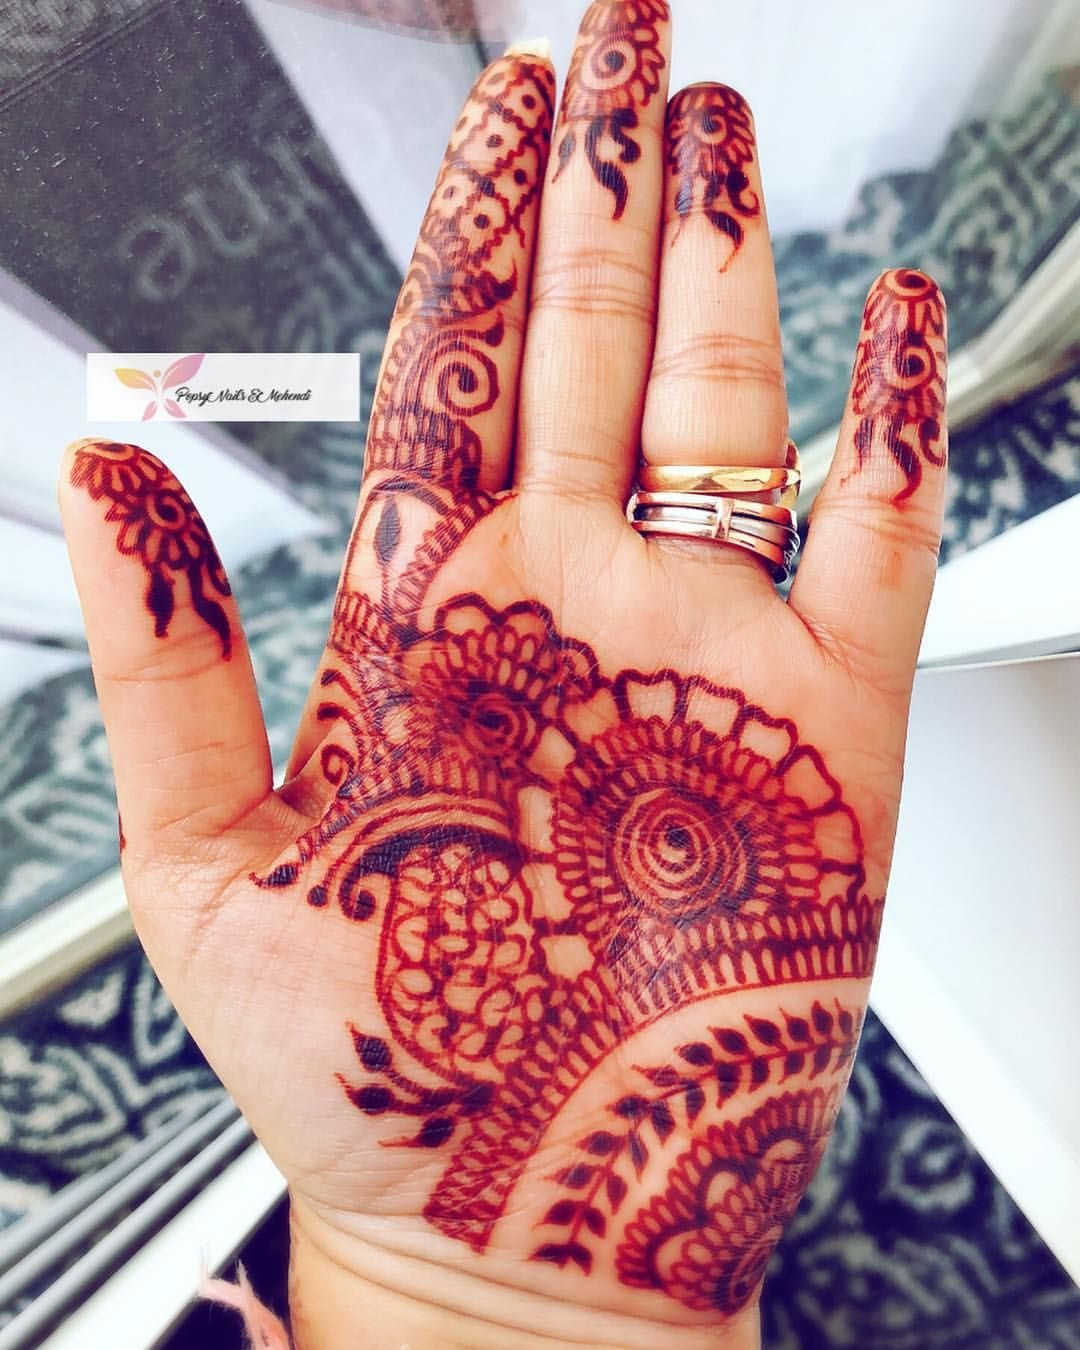 Stain After After 24 Hours Of Removing The Henna Henna Cones Mehndikajoeyhenna Henna Design Himani Henna Hennaworkspac Henna Henna Design Henna Cones